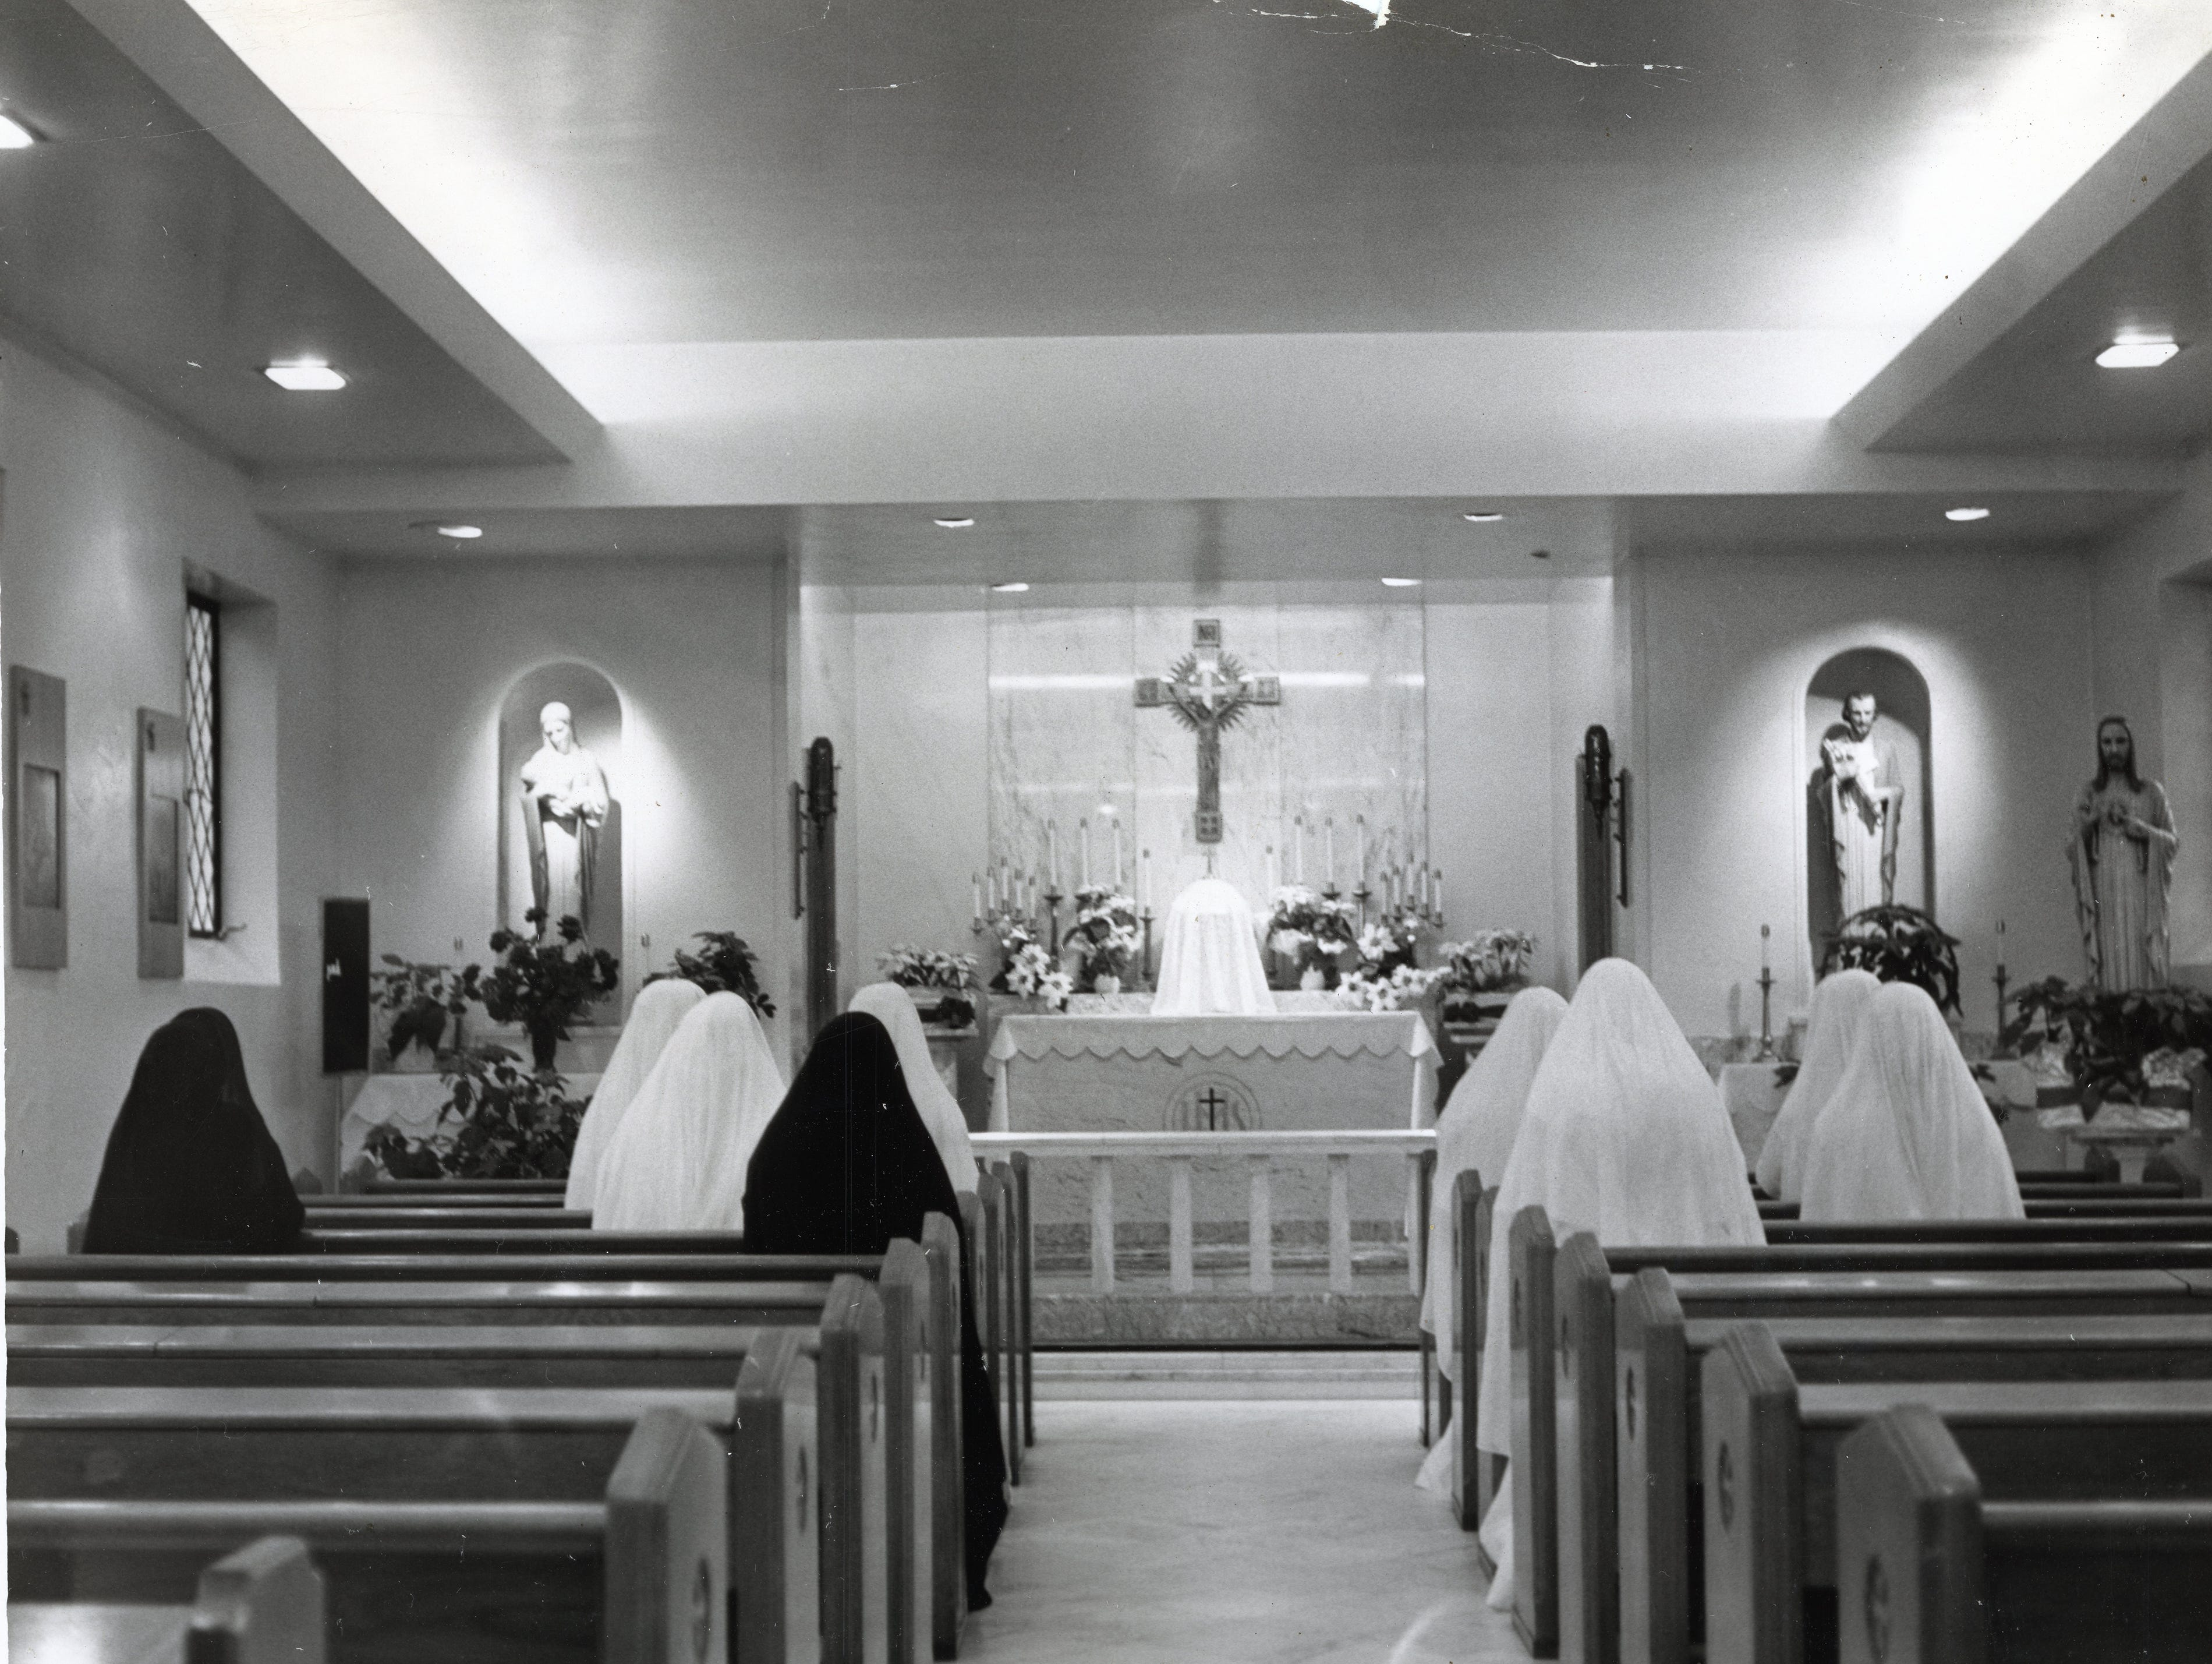 The chapel at St. Mary's Hospital in January 1964.